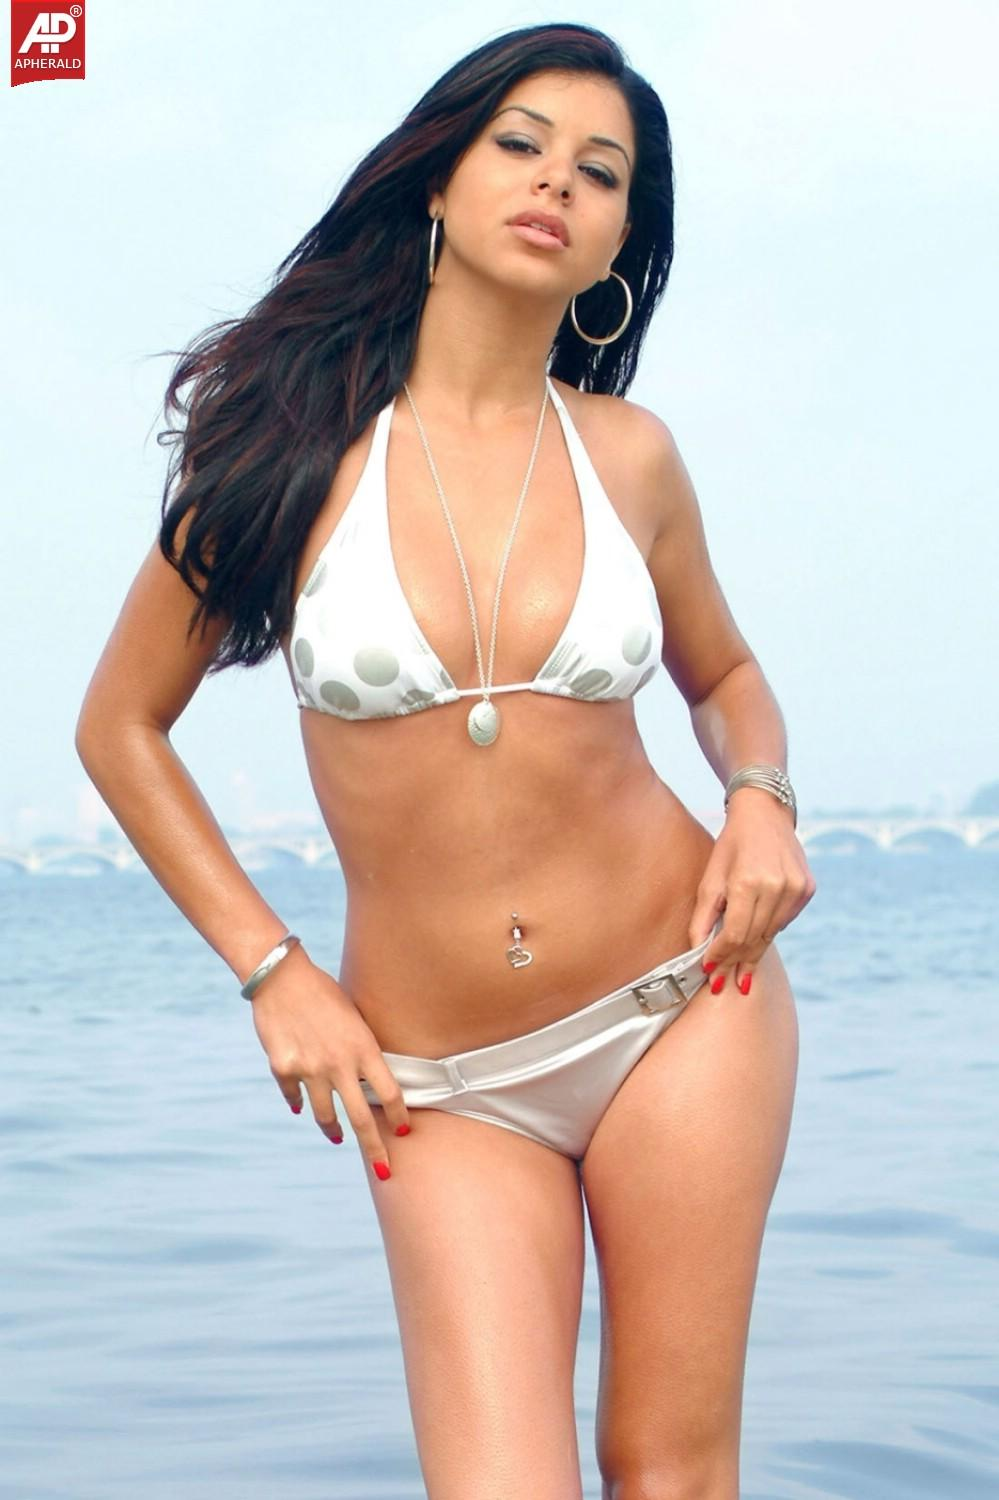 bollywood actresses on hot Mms sexy